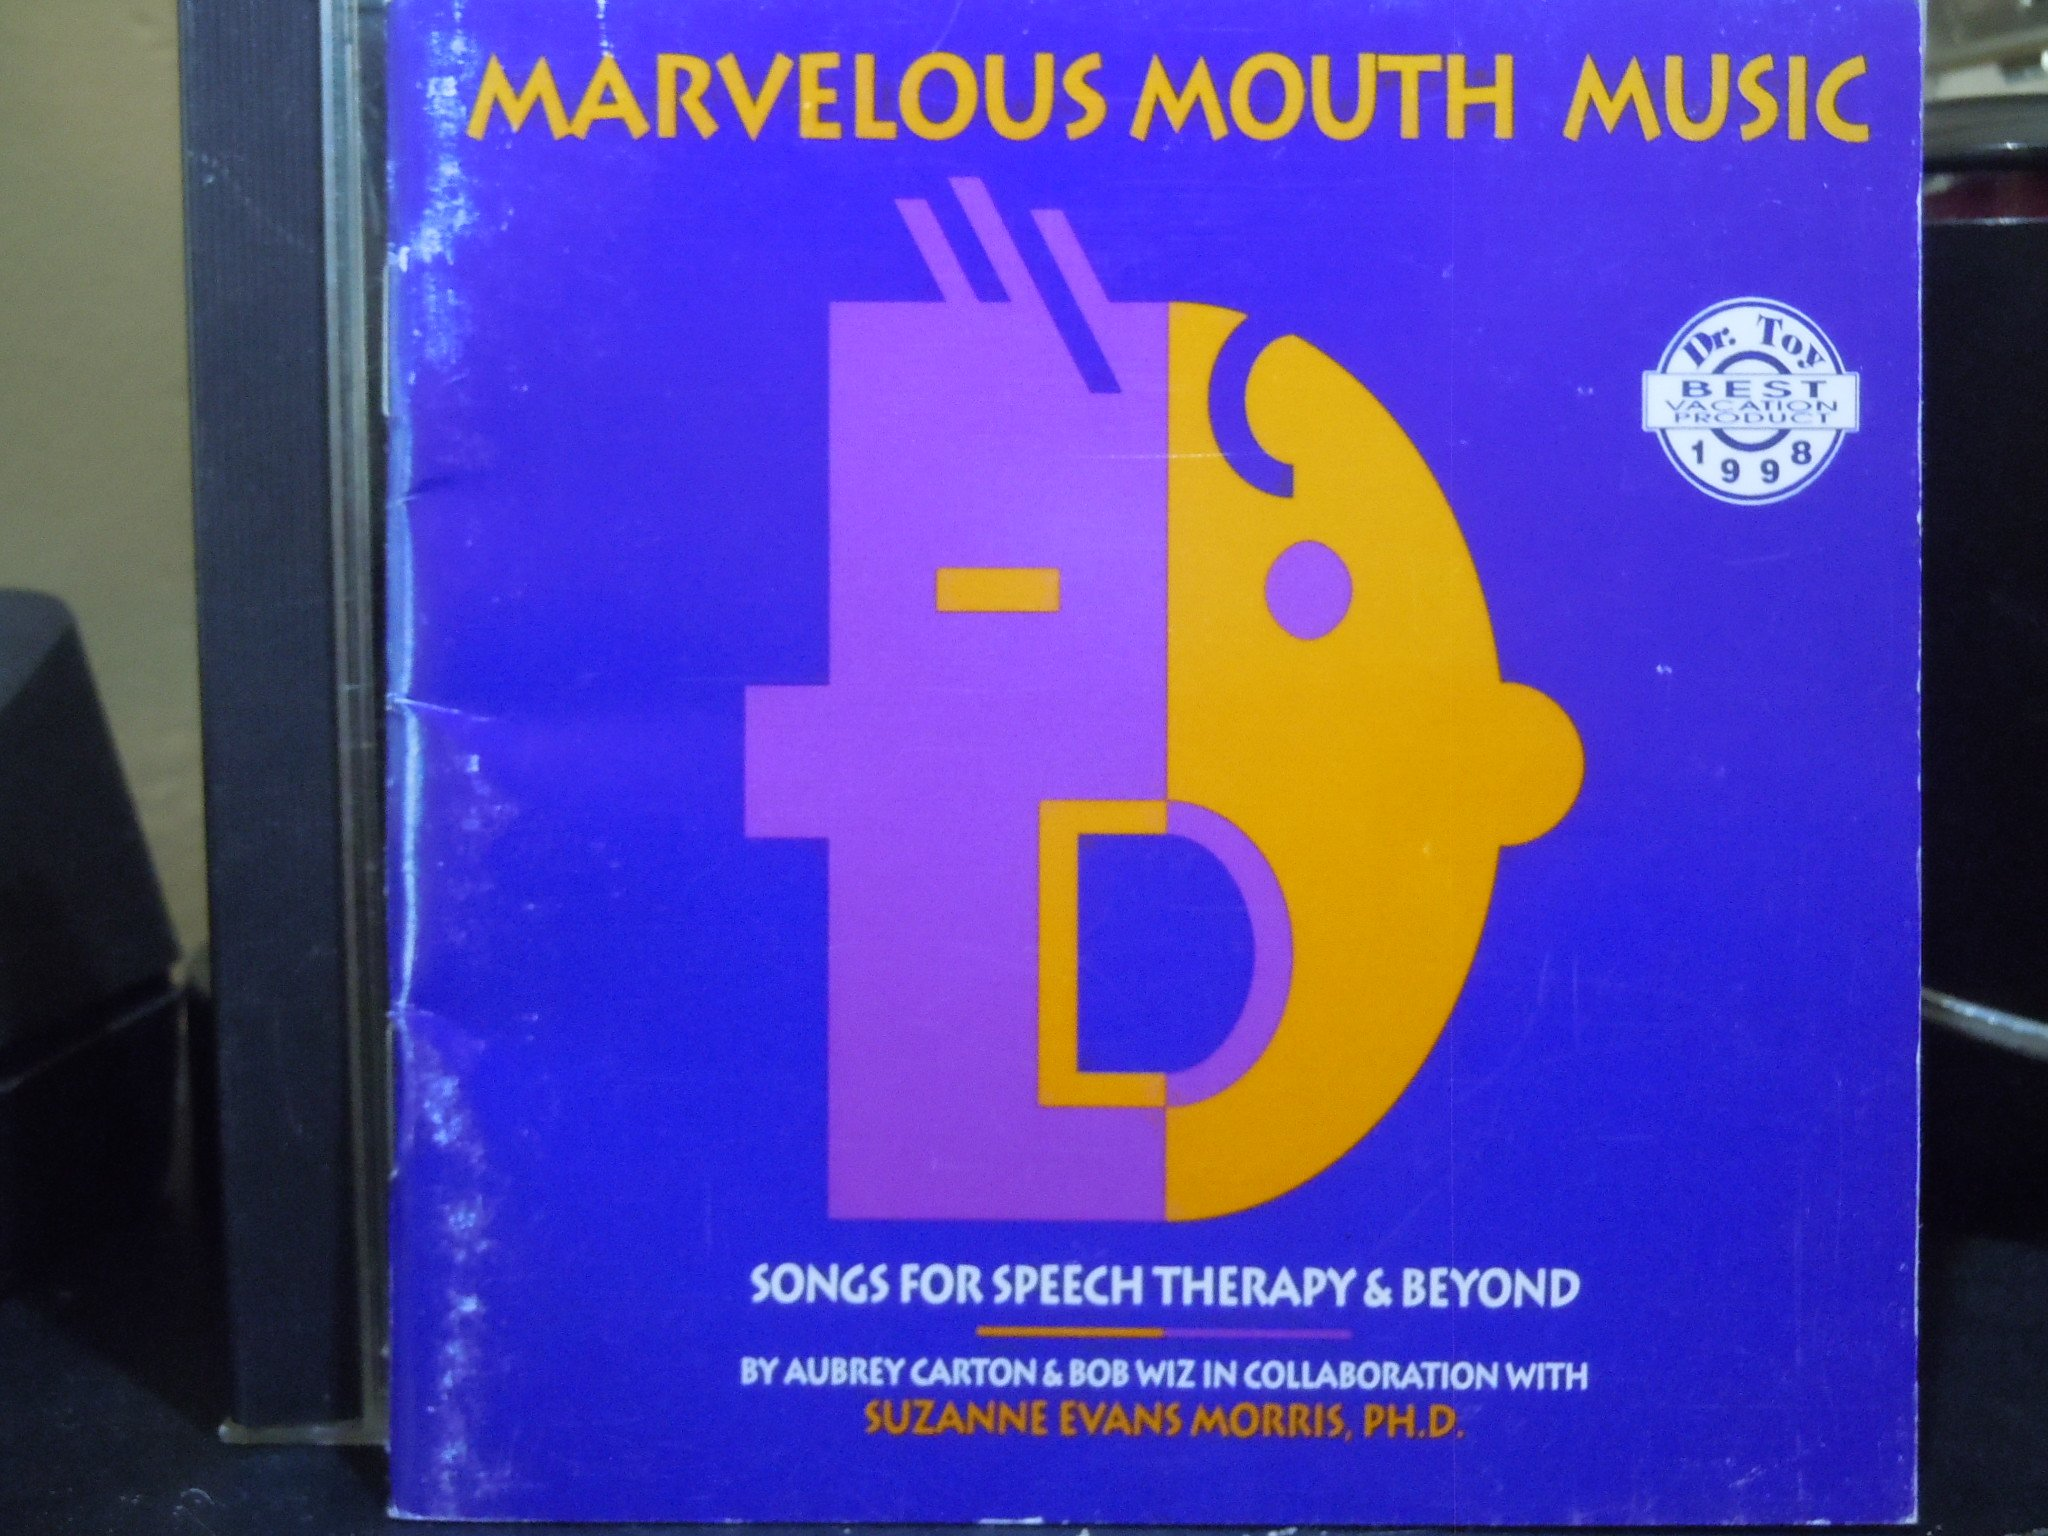 Marvelous Mouth Music: Songs for Speech Therapy and Beyond: Aubrey